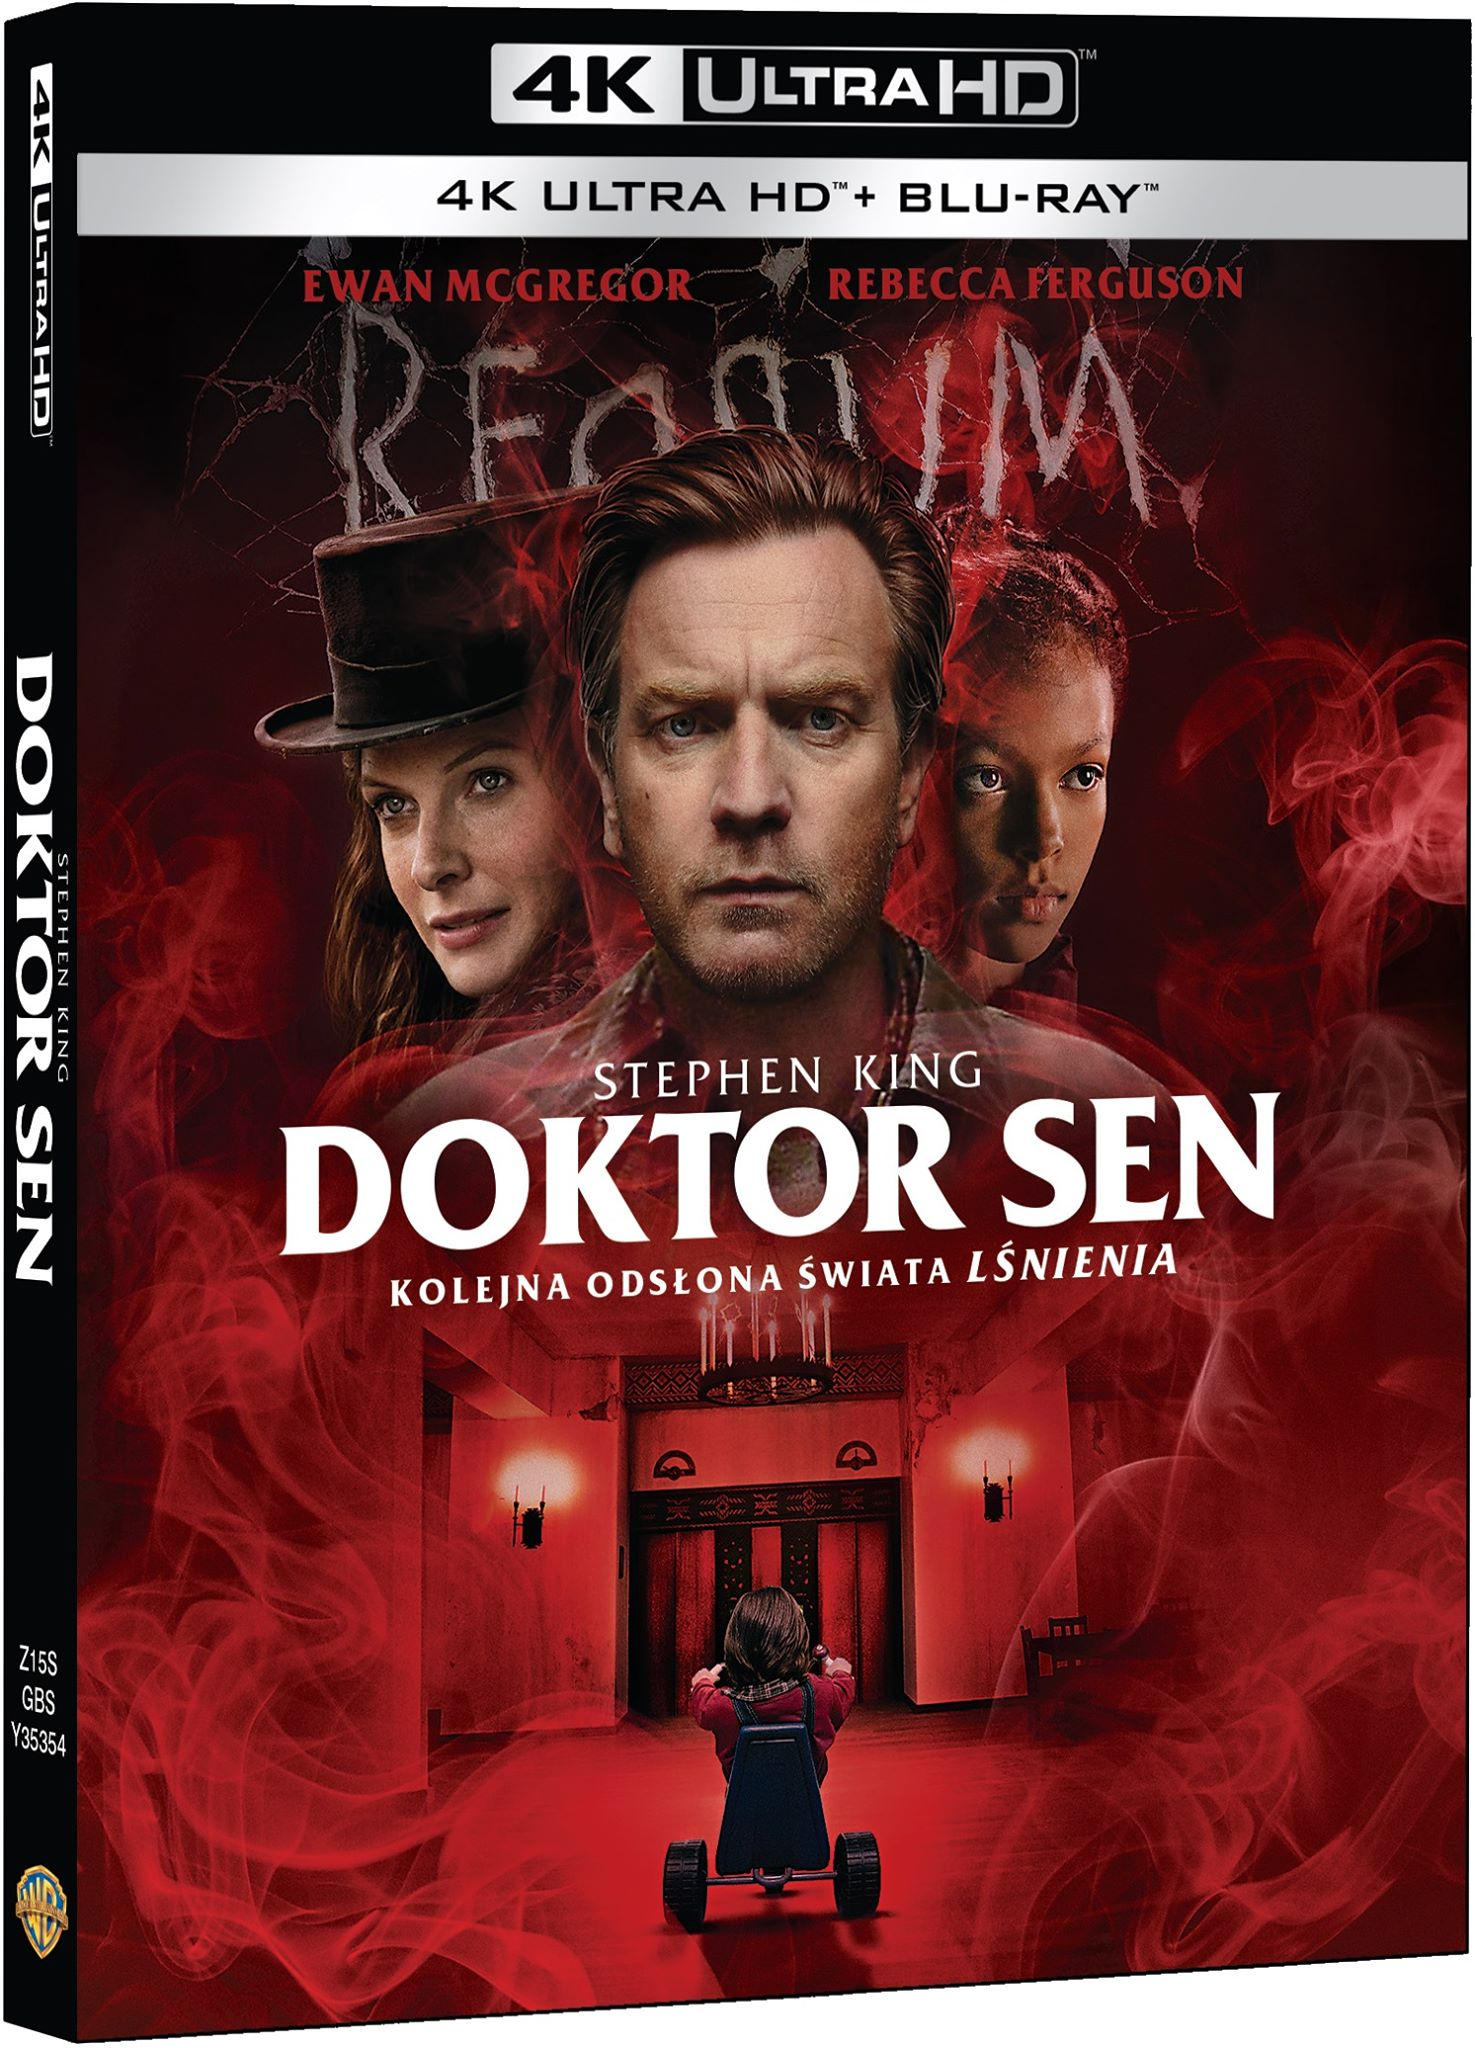 Doktor Sen - Doctor Sleep (2019) - Film 4K Ultra-HD